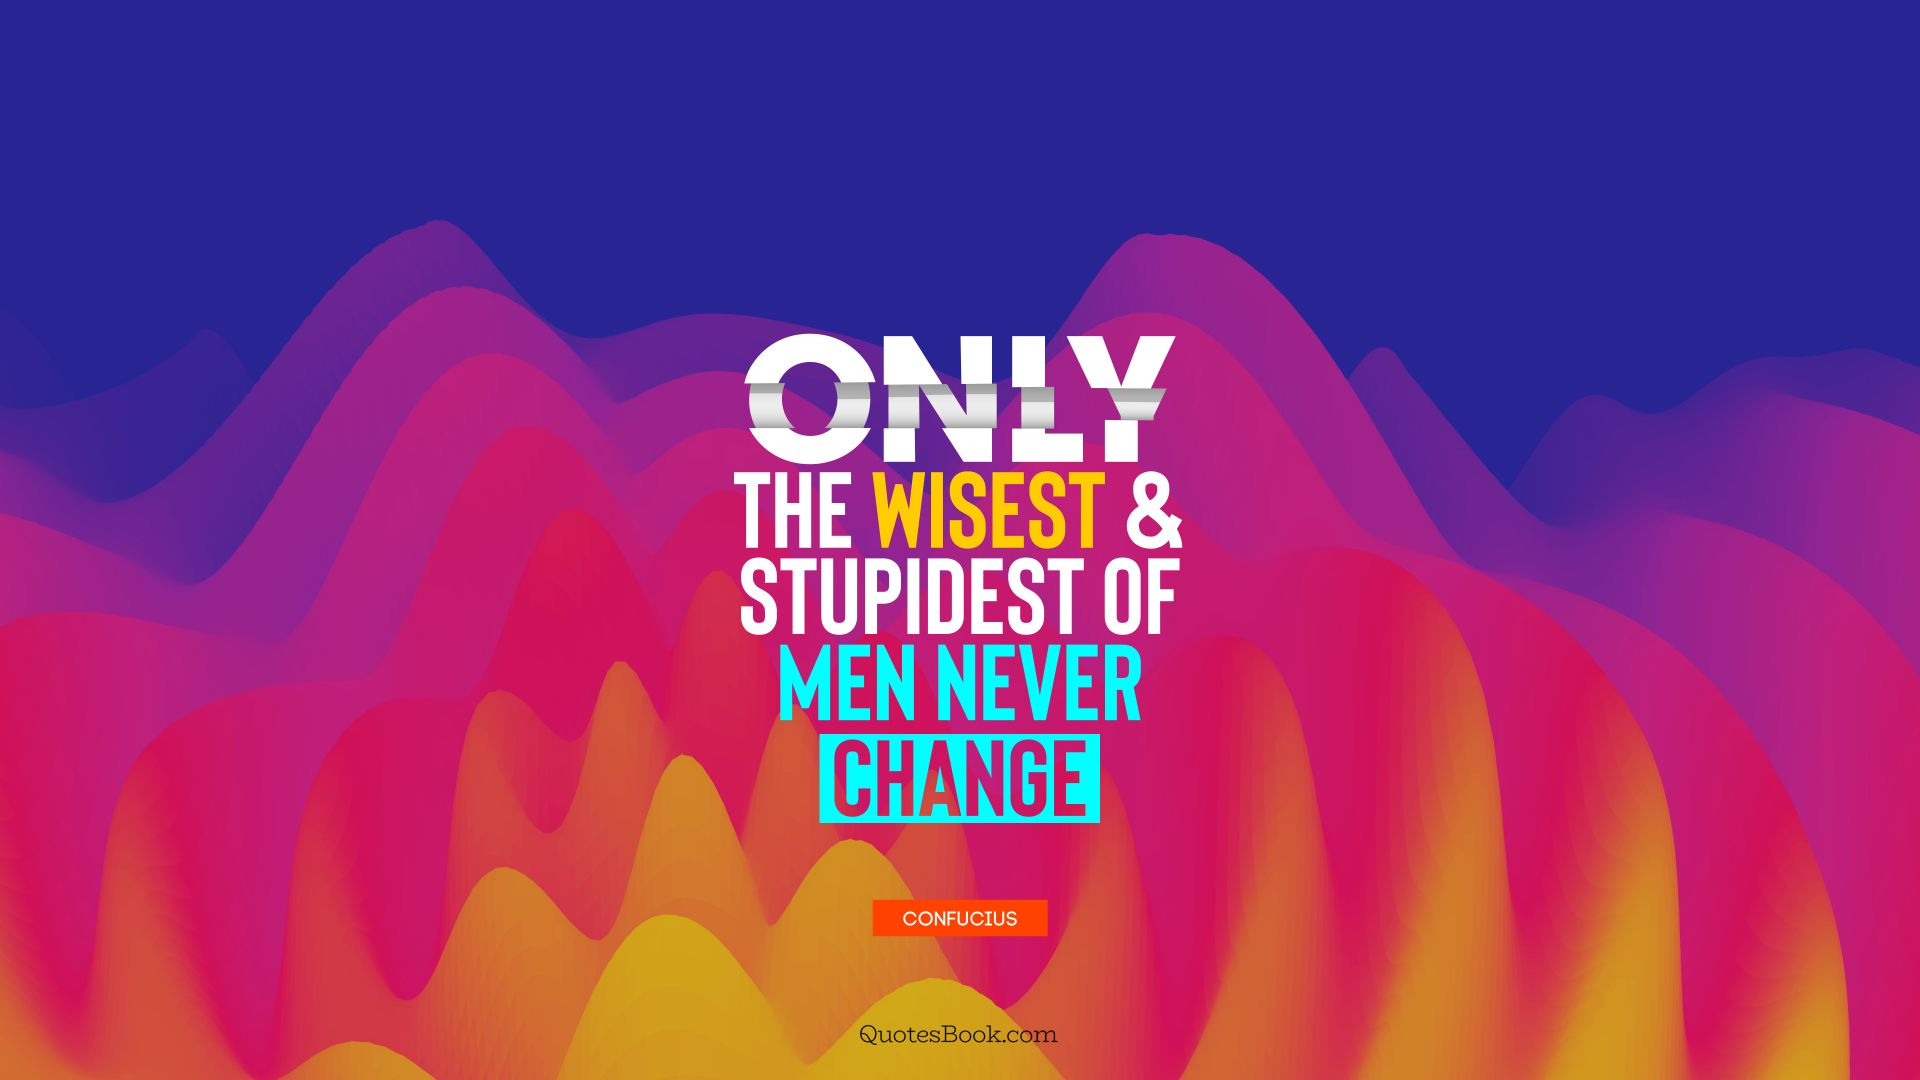 Only the wisest and stupidest of men never change. - Quote by Confucius